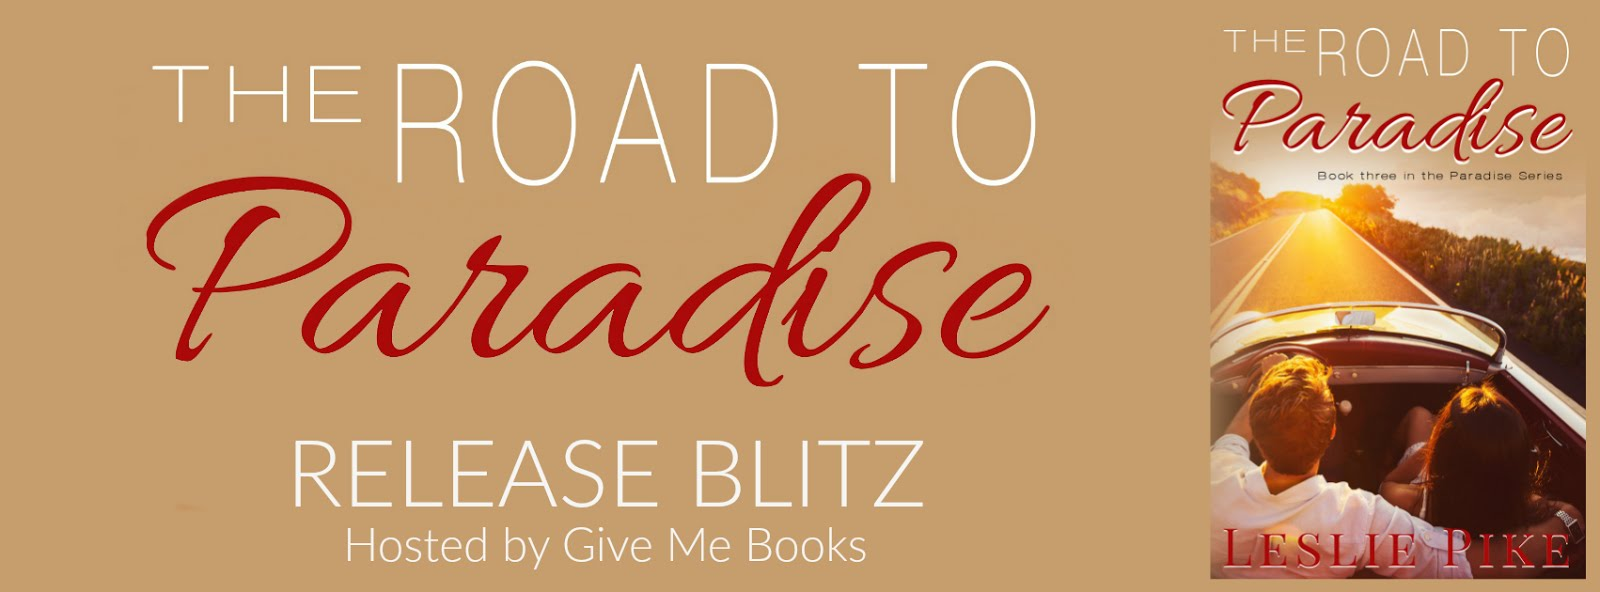 The Road To Paradise Release Blitz